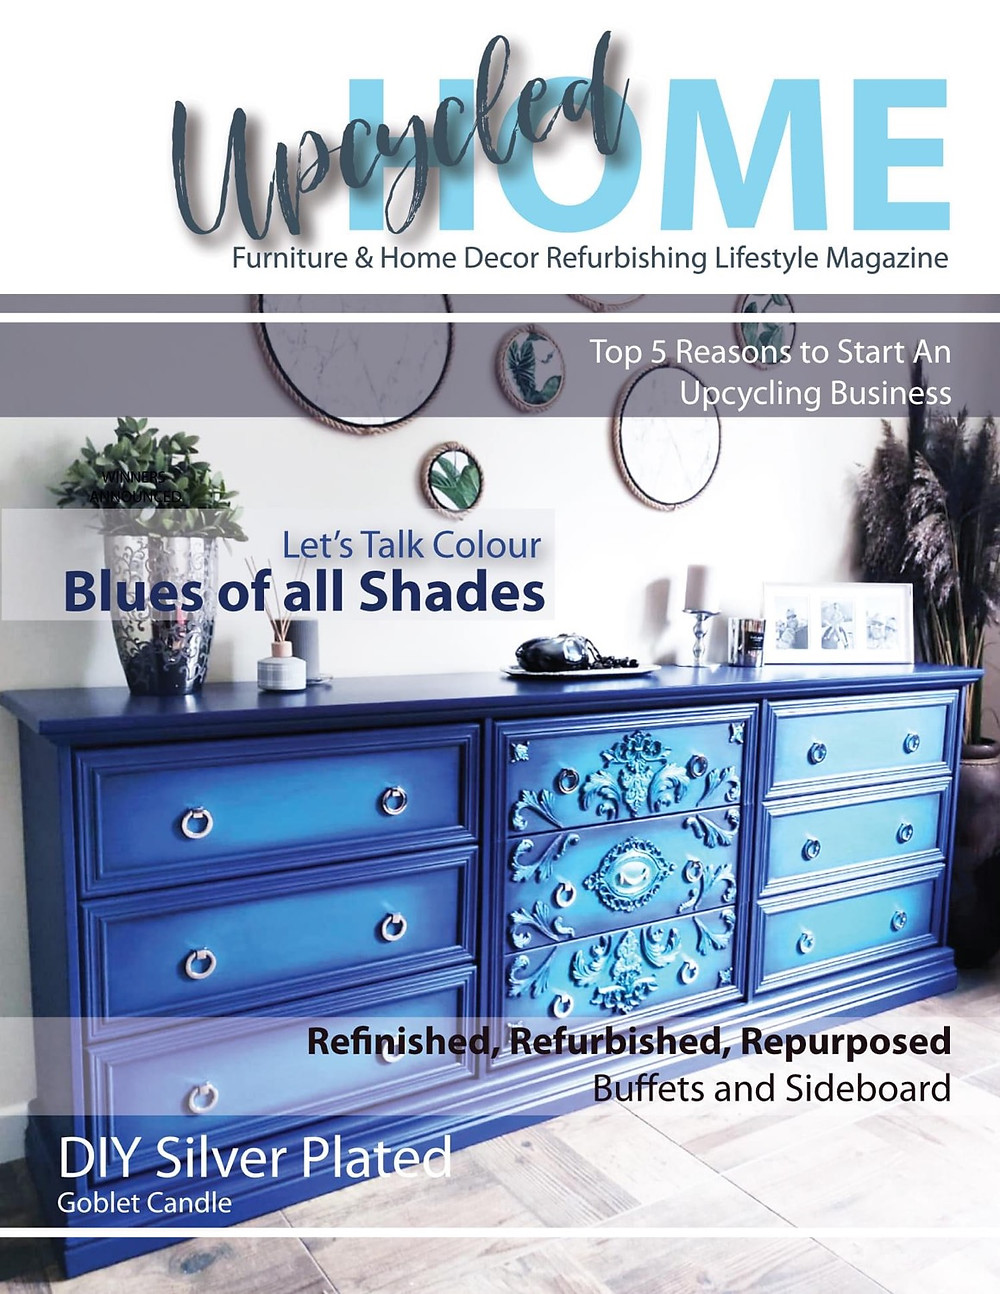 UpcycledHOME-Magazine-Spring 2021-Issue 2-Vintage & Varnish-Furniture & Home Decor Refurbishing Lifestyle Magazine